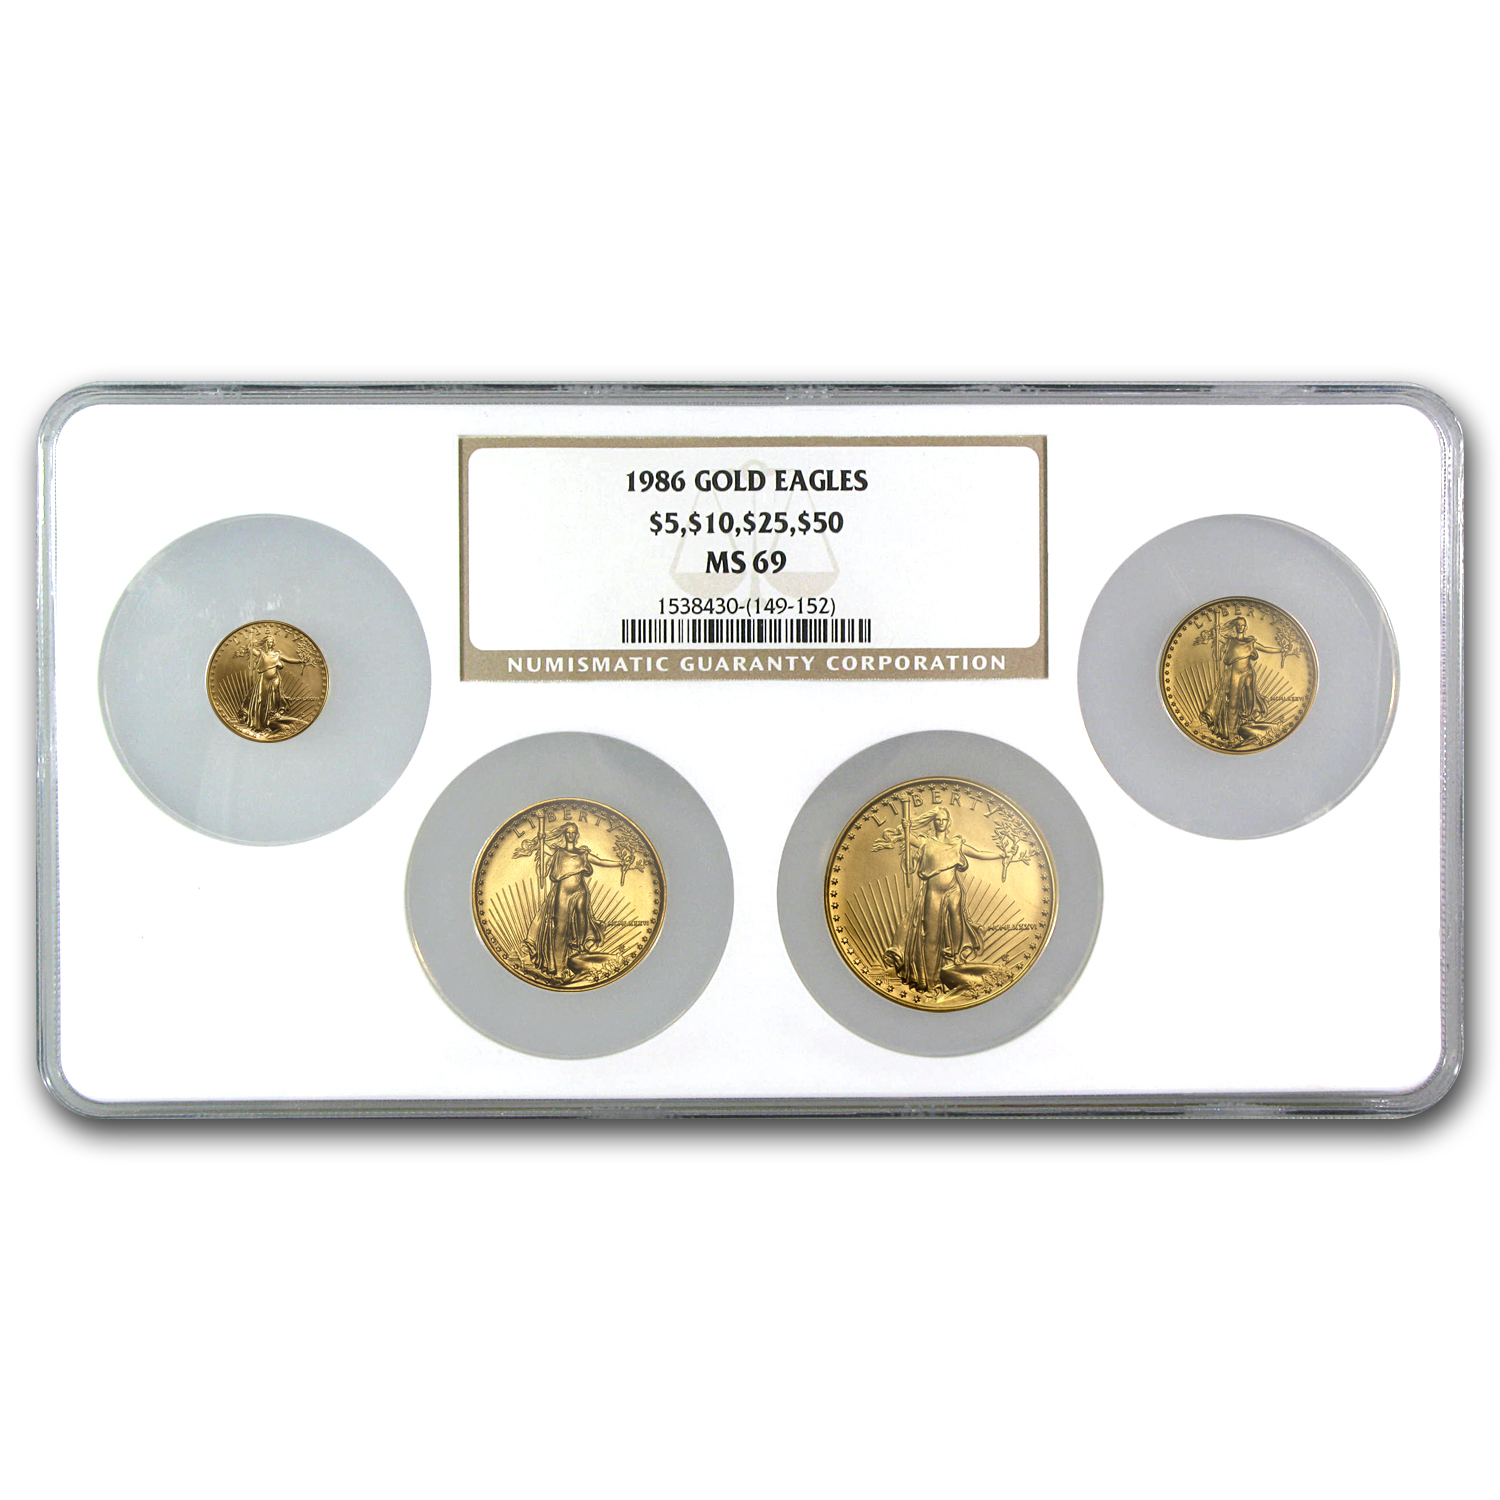 1986 4-Coin Gold American Eagle Set MS-69 NGC Uni-Holder